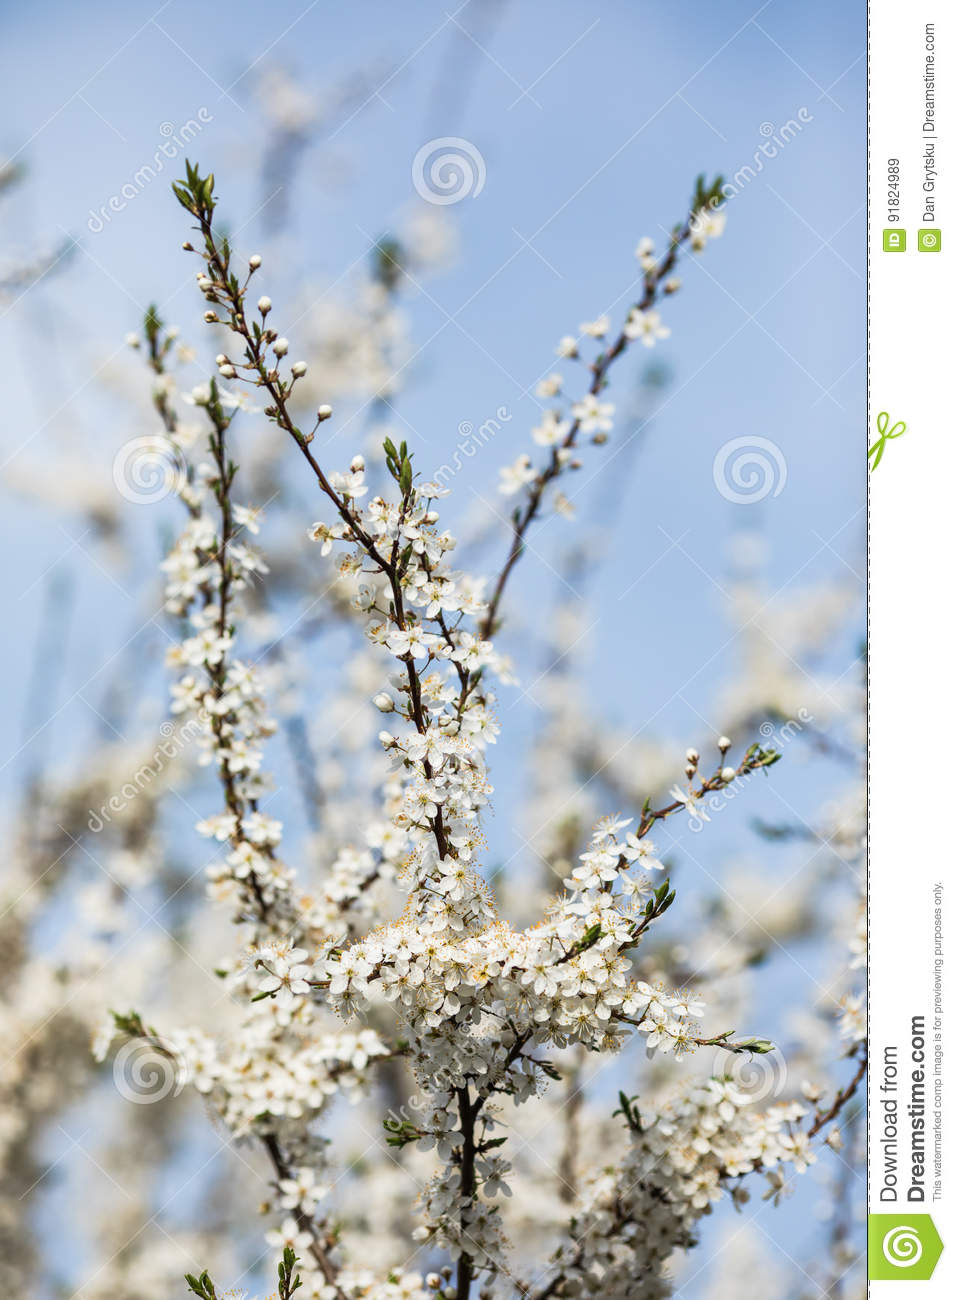 Almond Tree With Big White Flowers Under Blue Sky Stock Image